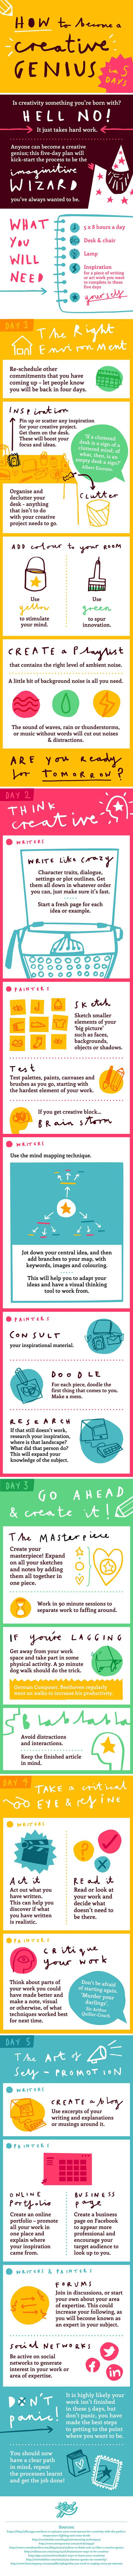 Creative genius infographic